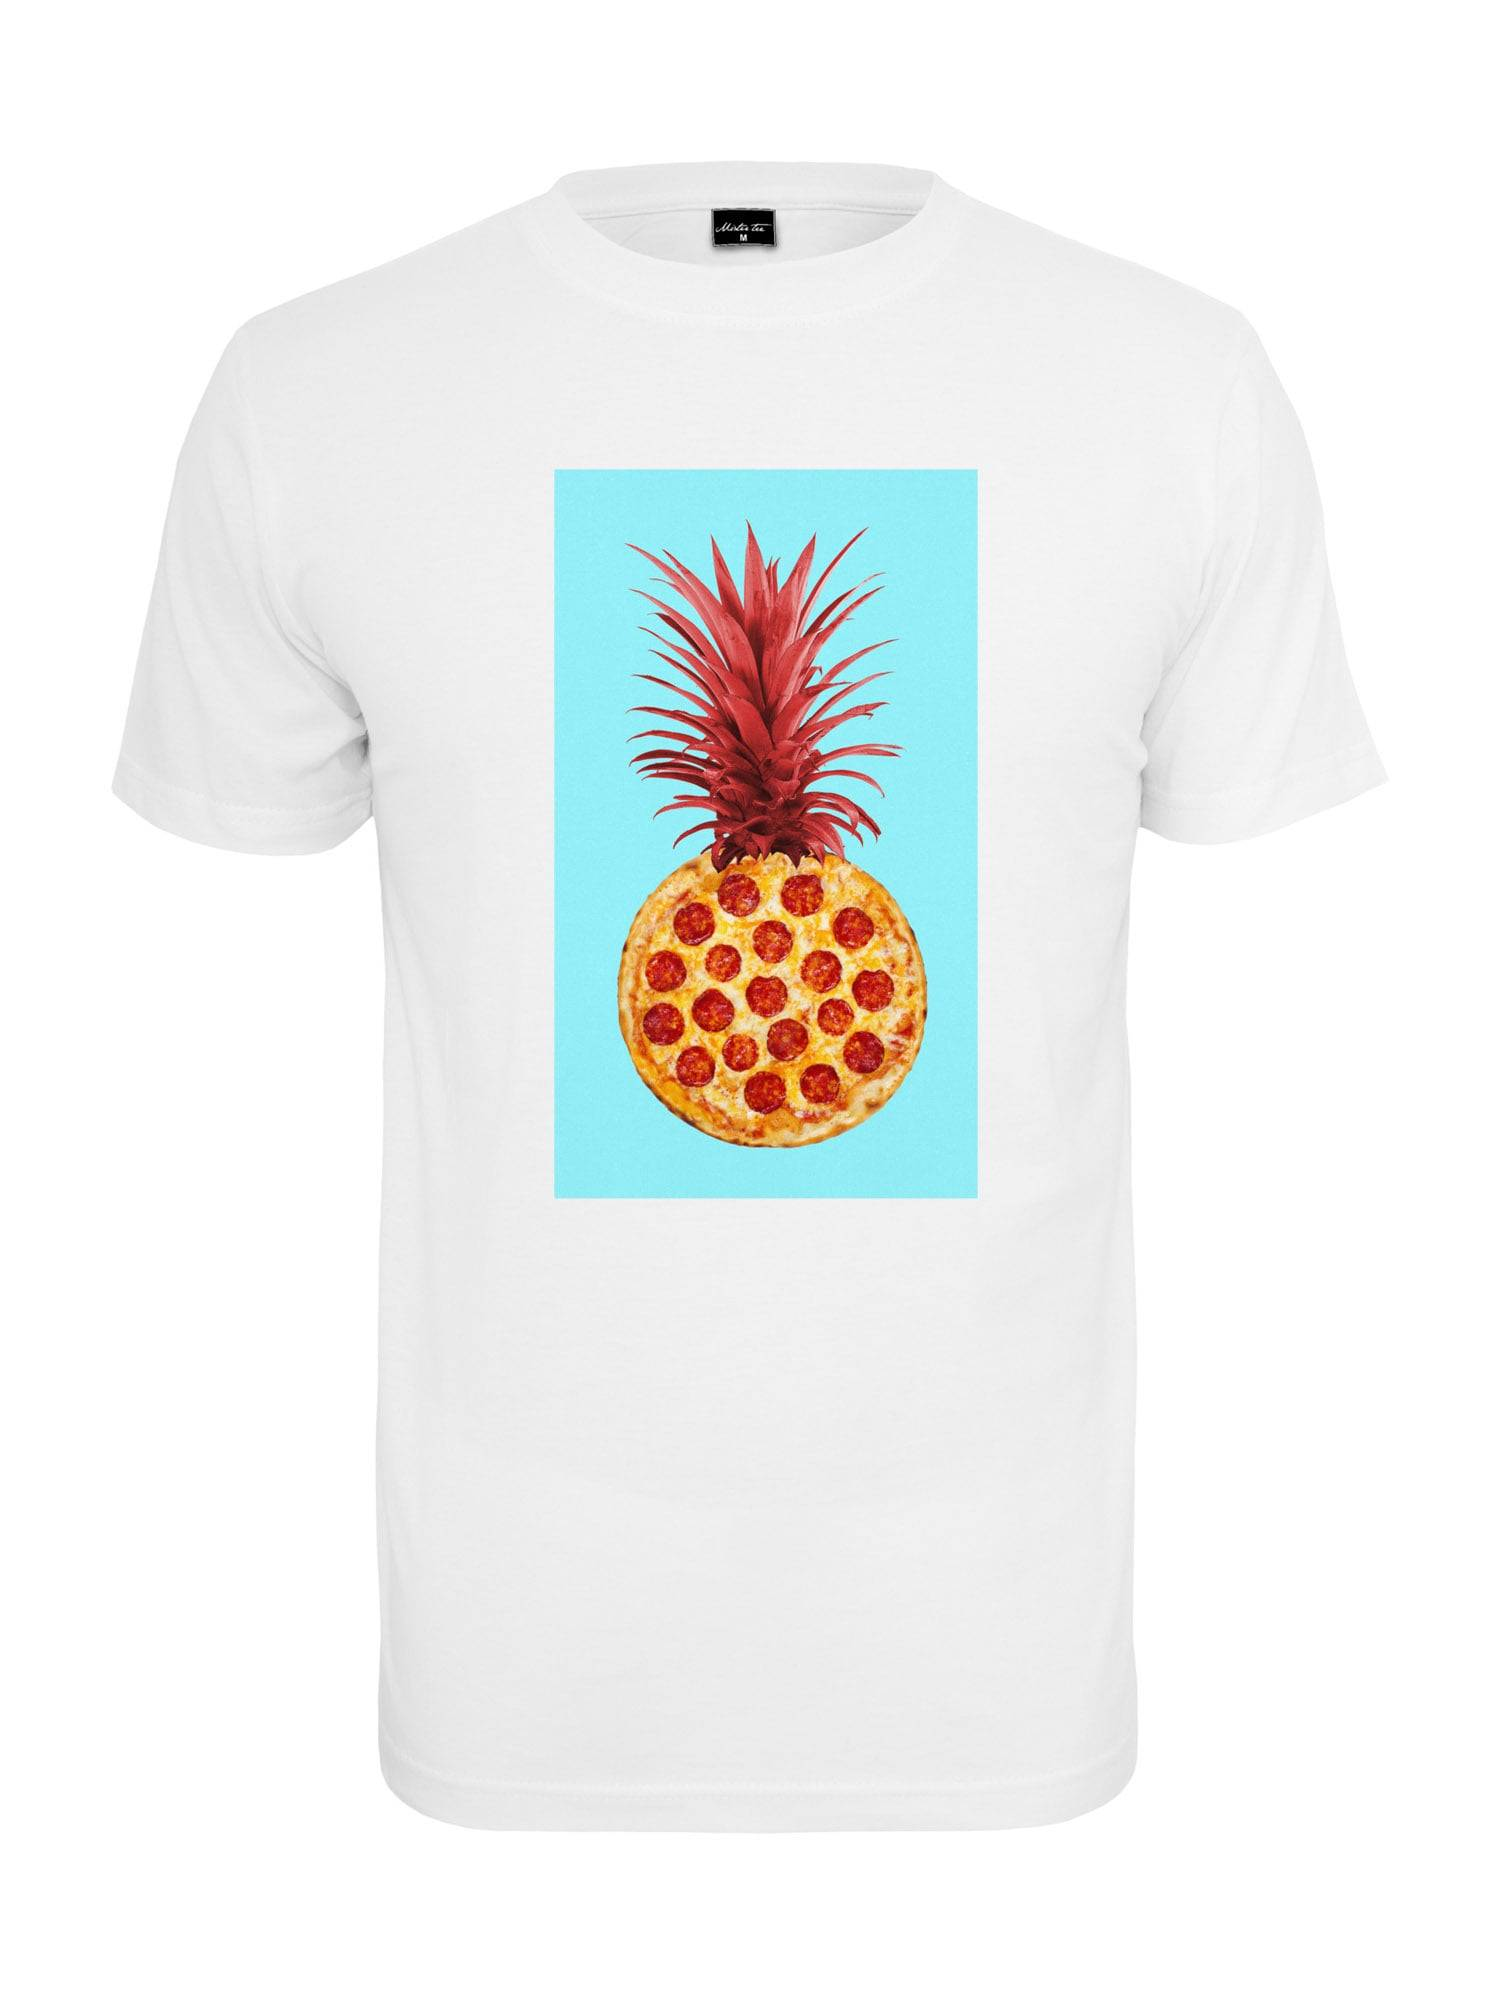 Tee T-Shirt 'Pizza Pineapple'  - Blanc - Taille: M - male